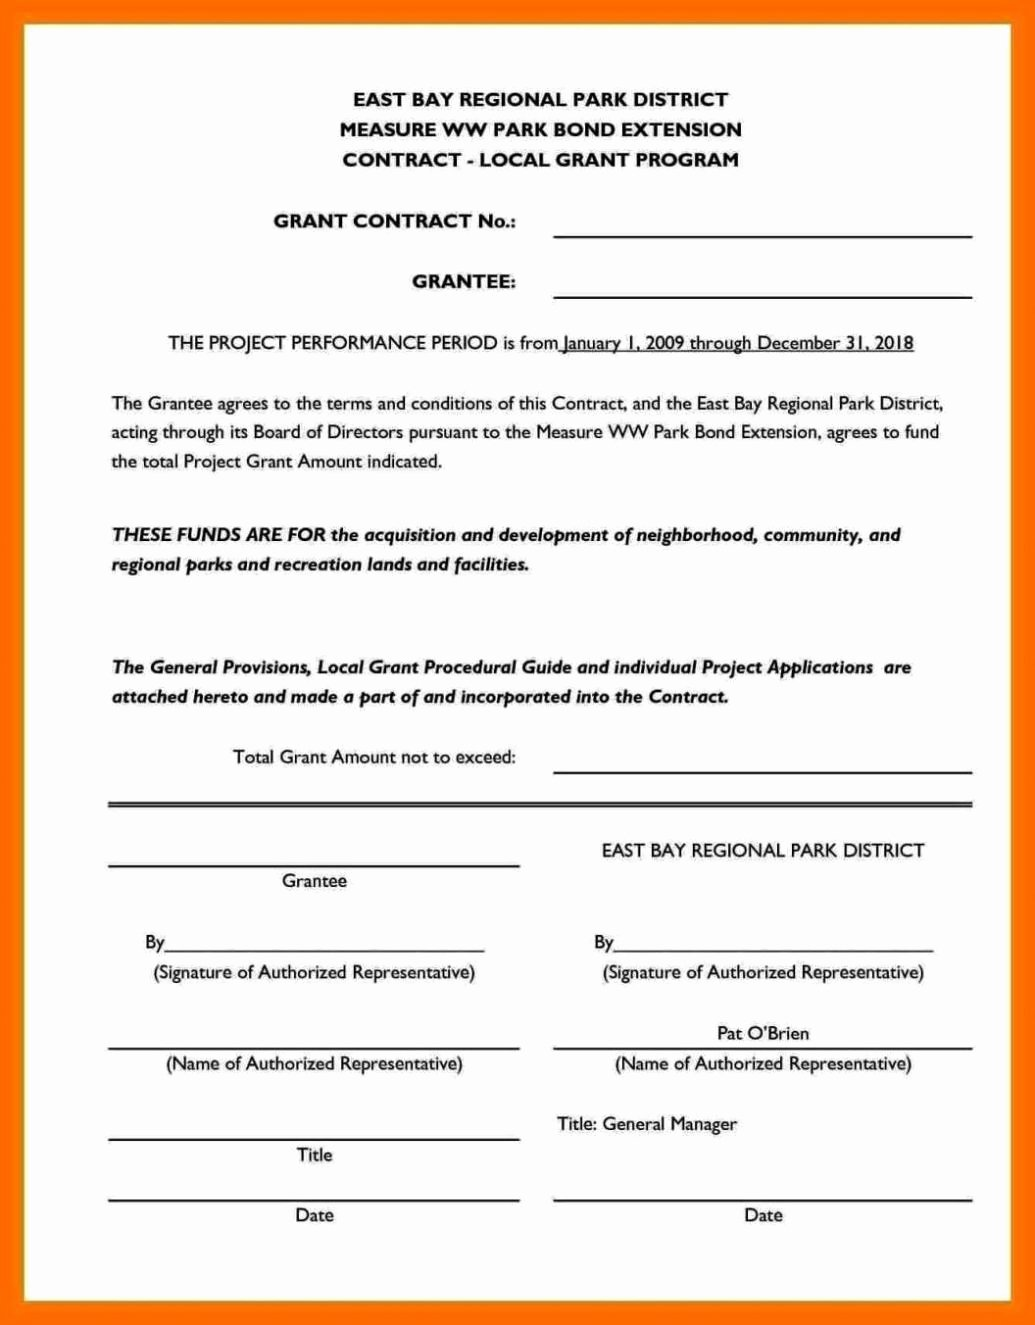 Simple Collaboration Agreement Template Luxury Simple Collaboration Agreement Template Sampletemplatess